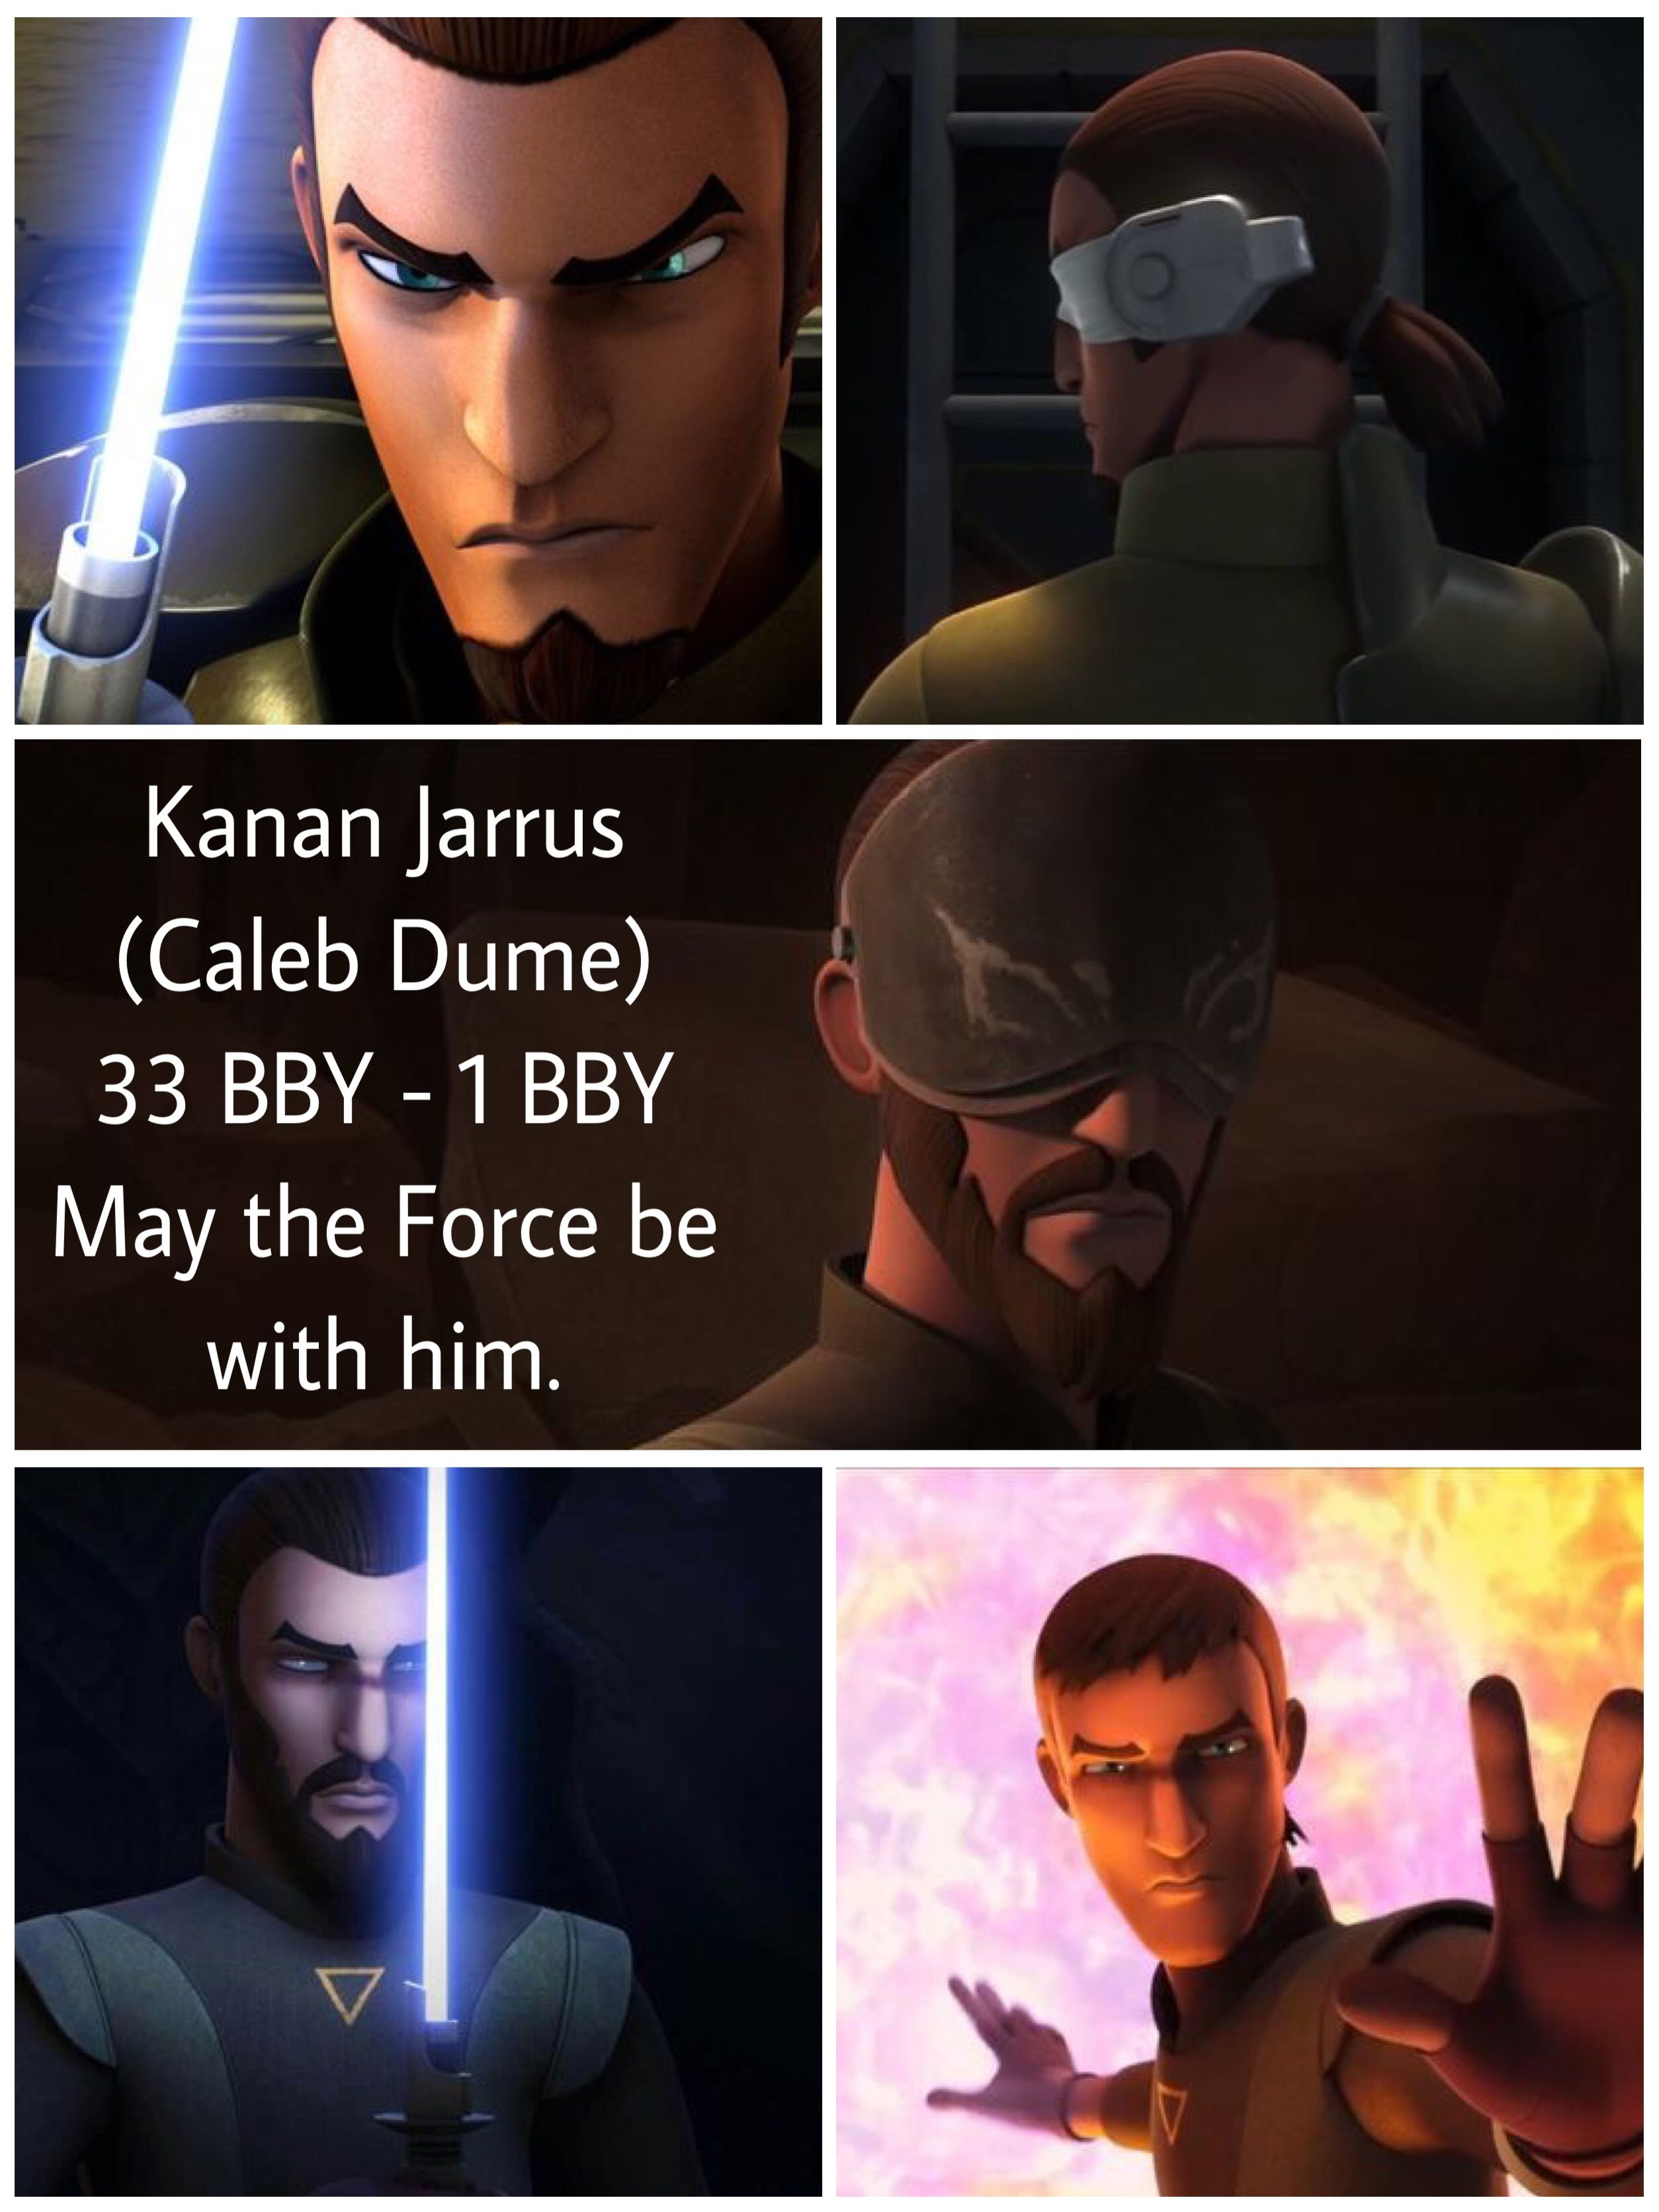 May the Force be with you, Kanan Jarrus_  Star Wars Rebels.jpeg